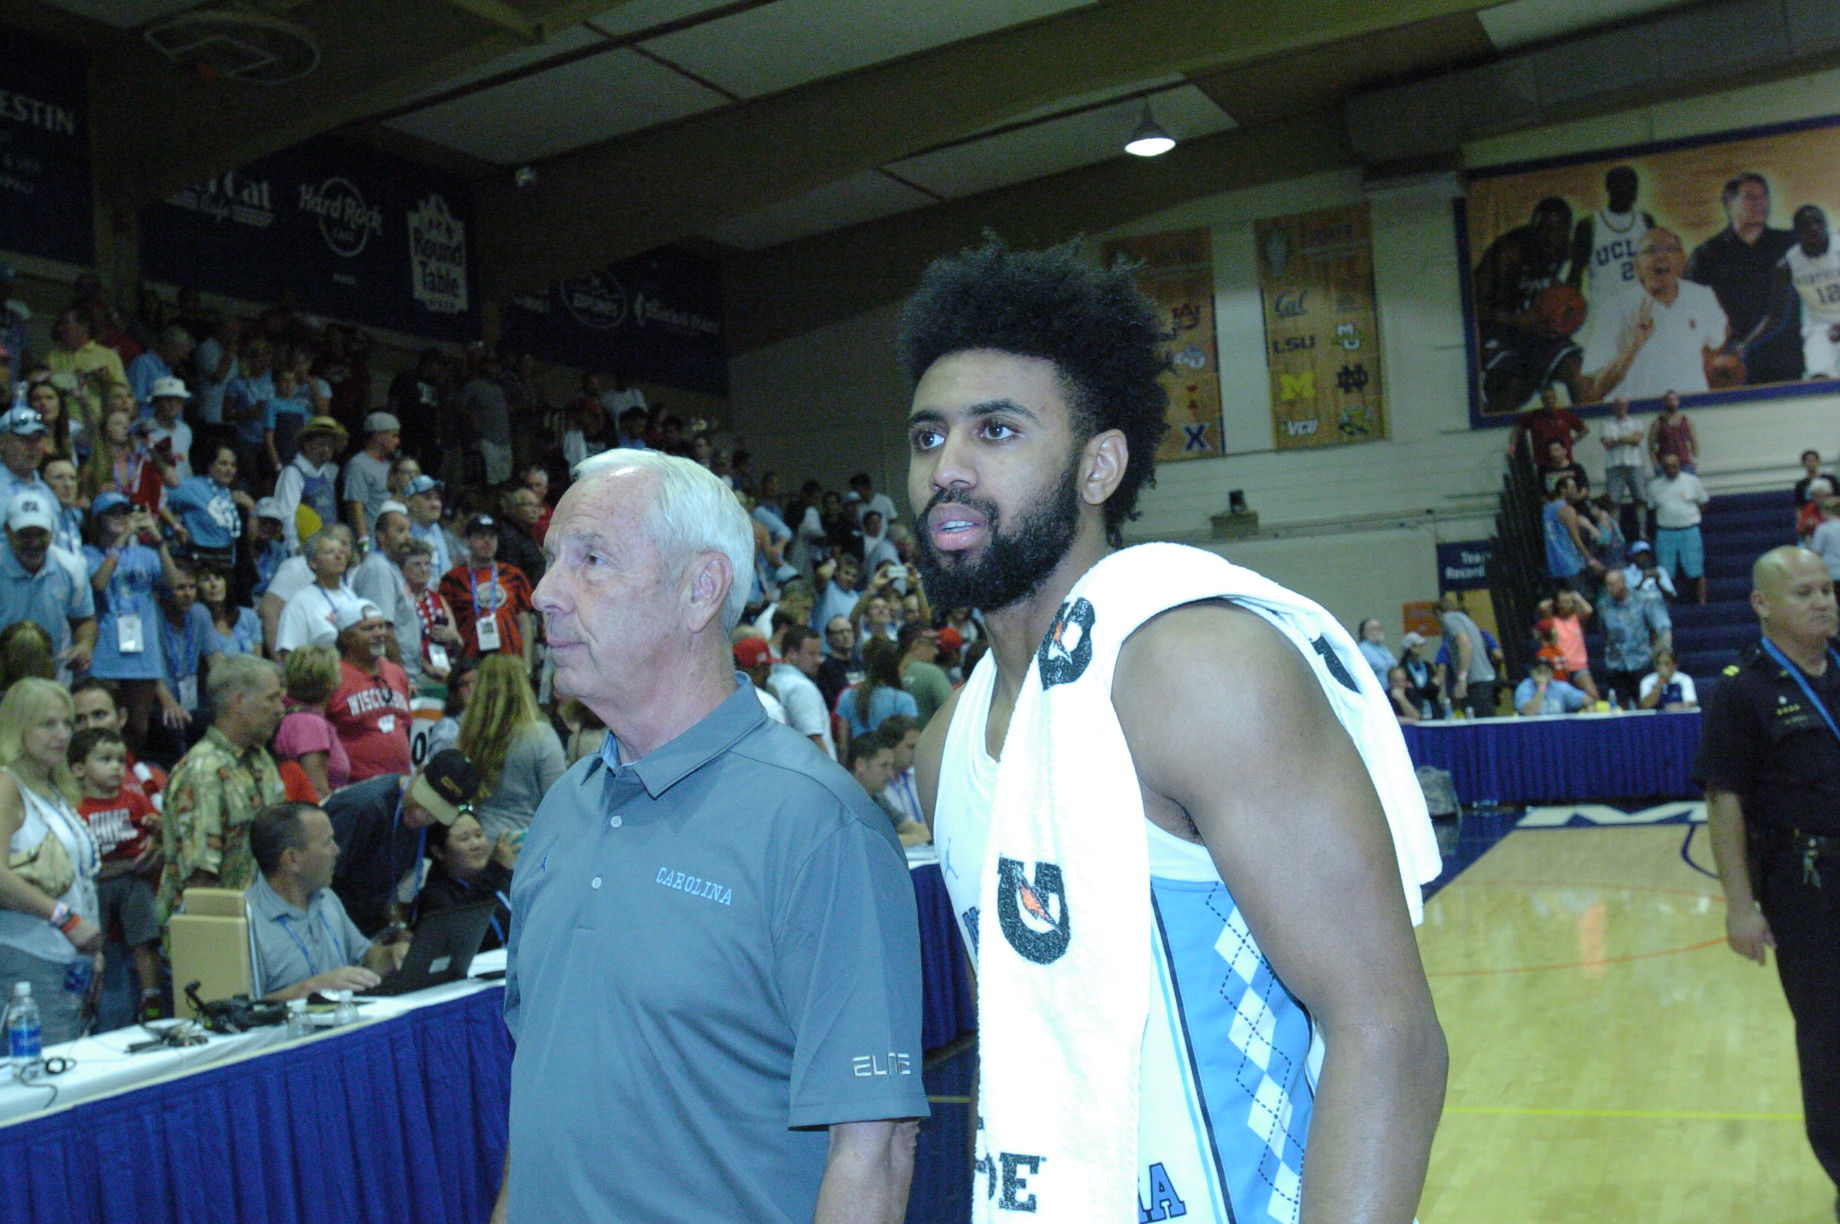 UNC Head Coach and MVP. Championship game between UW vs UNC at the 2016 Maui Jim Maui Invitational. PC: Joel B. Tamayo.